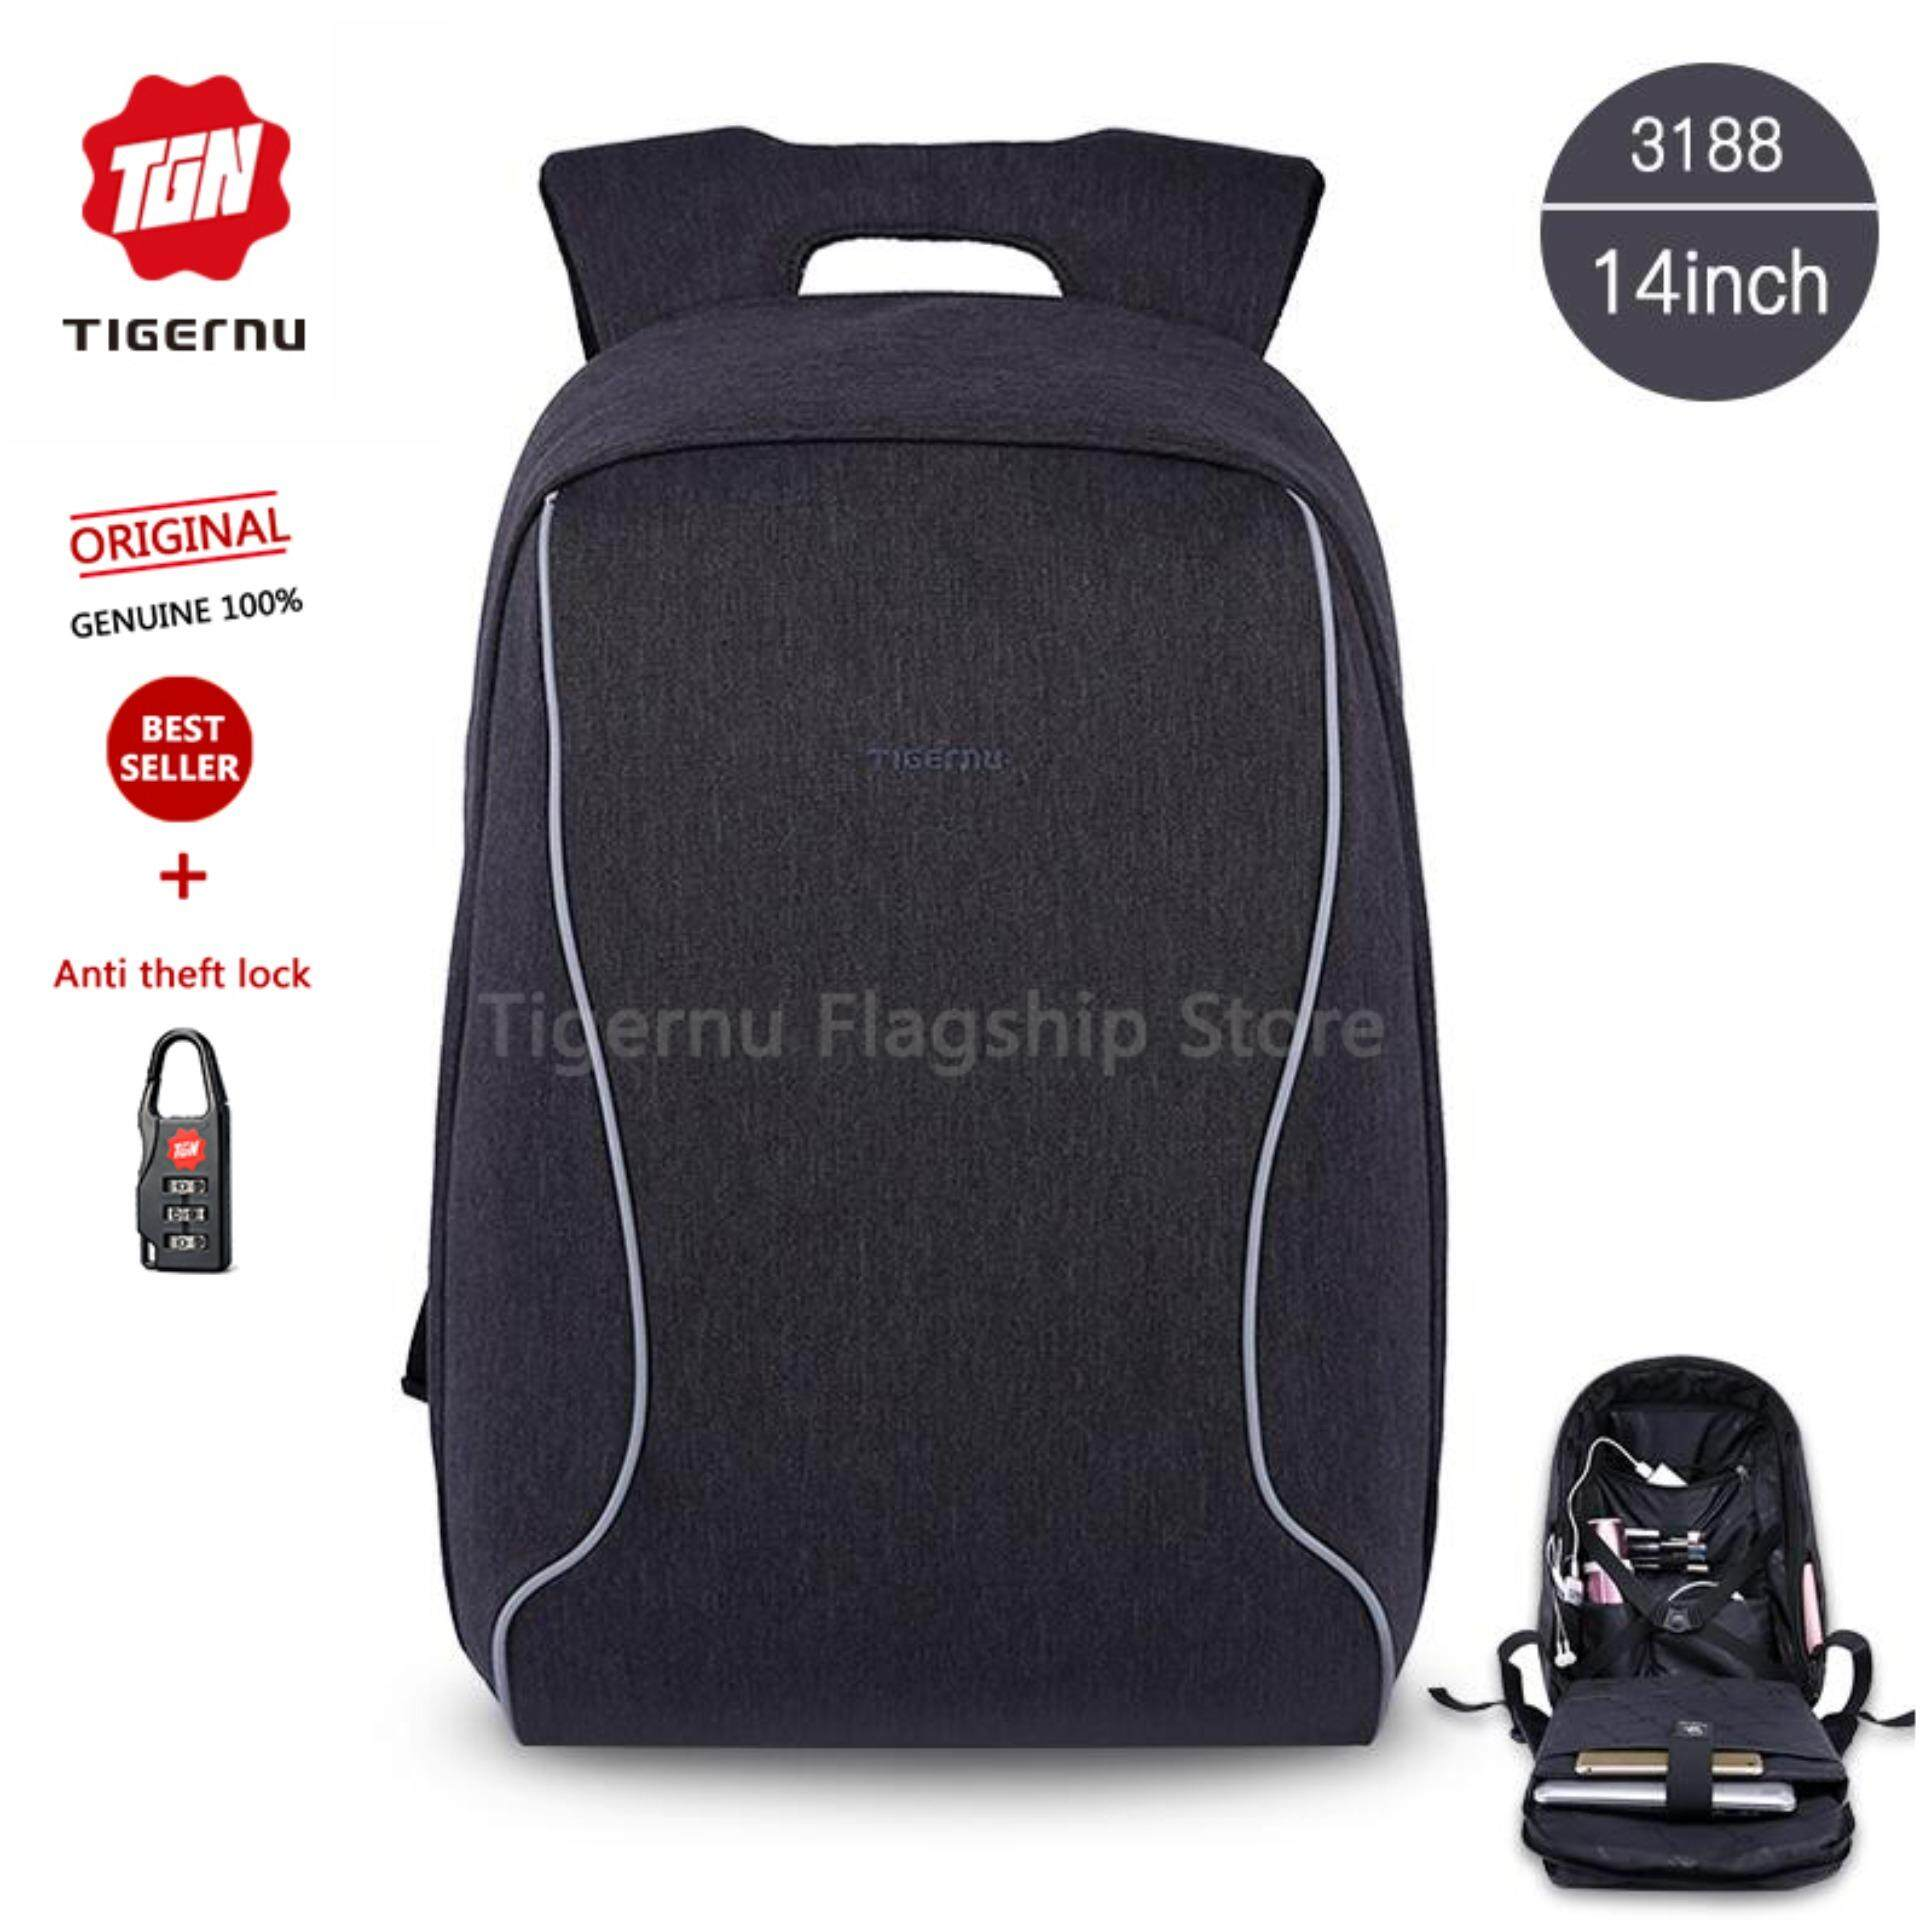 f01ee4f85d4 Tigernu Brand 14 Inch Laptop Bags Fashion Anti-Theft Men  s Business  Backpack T